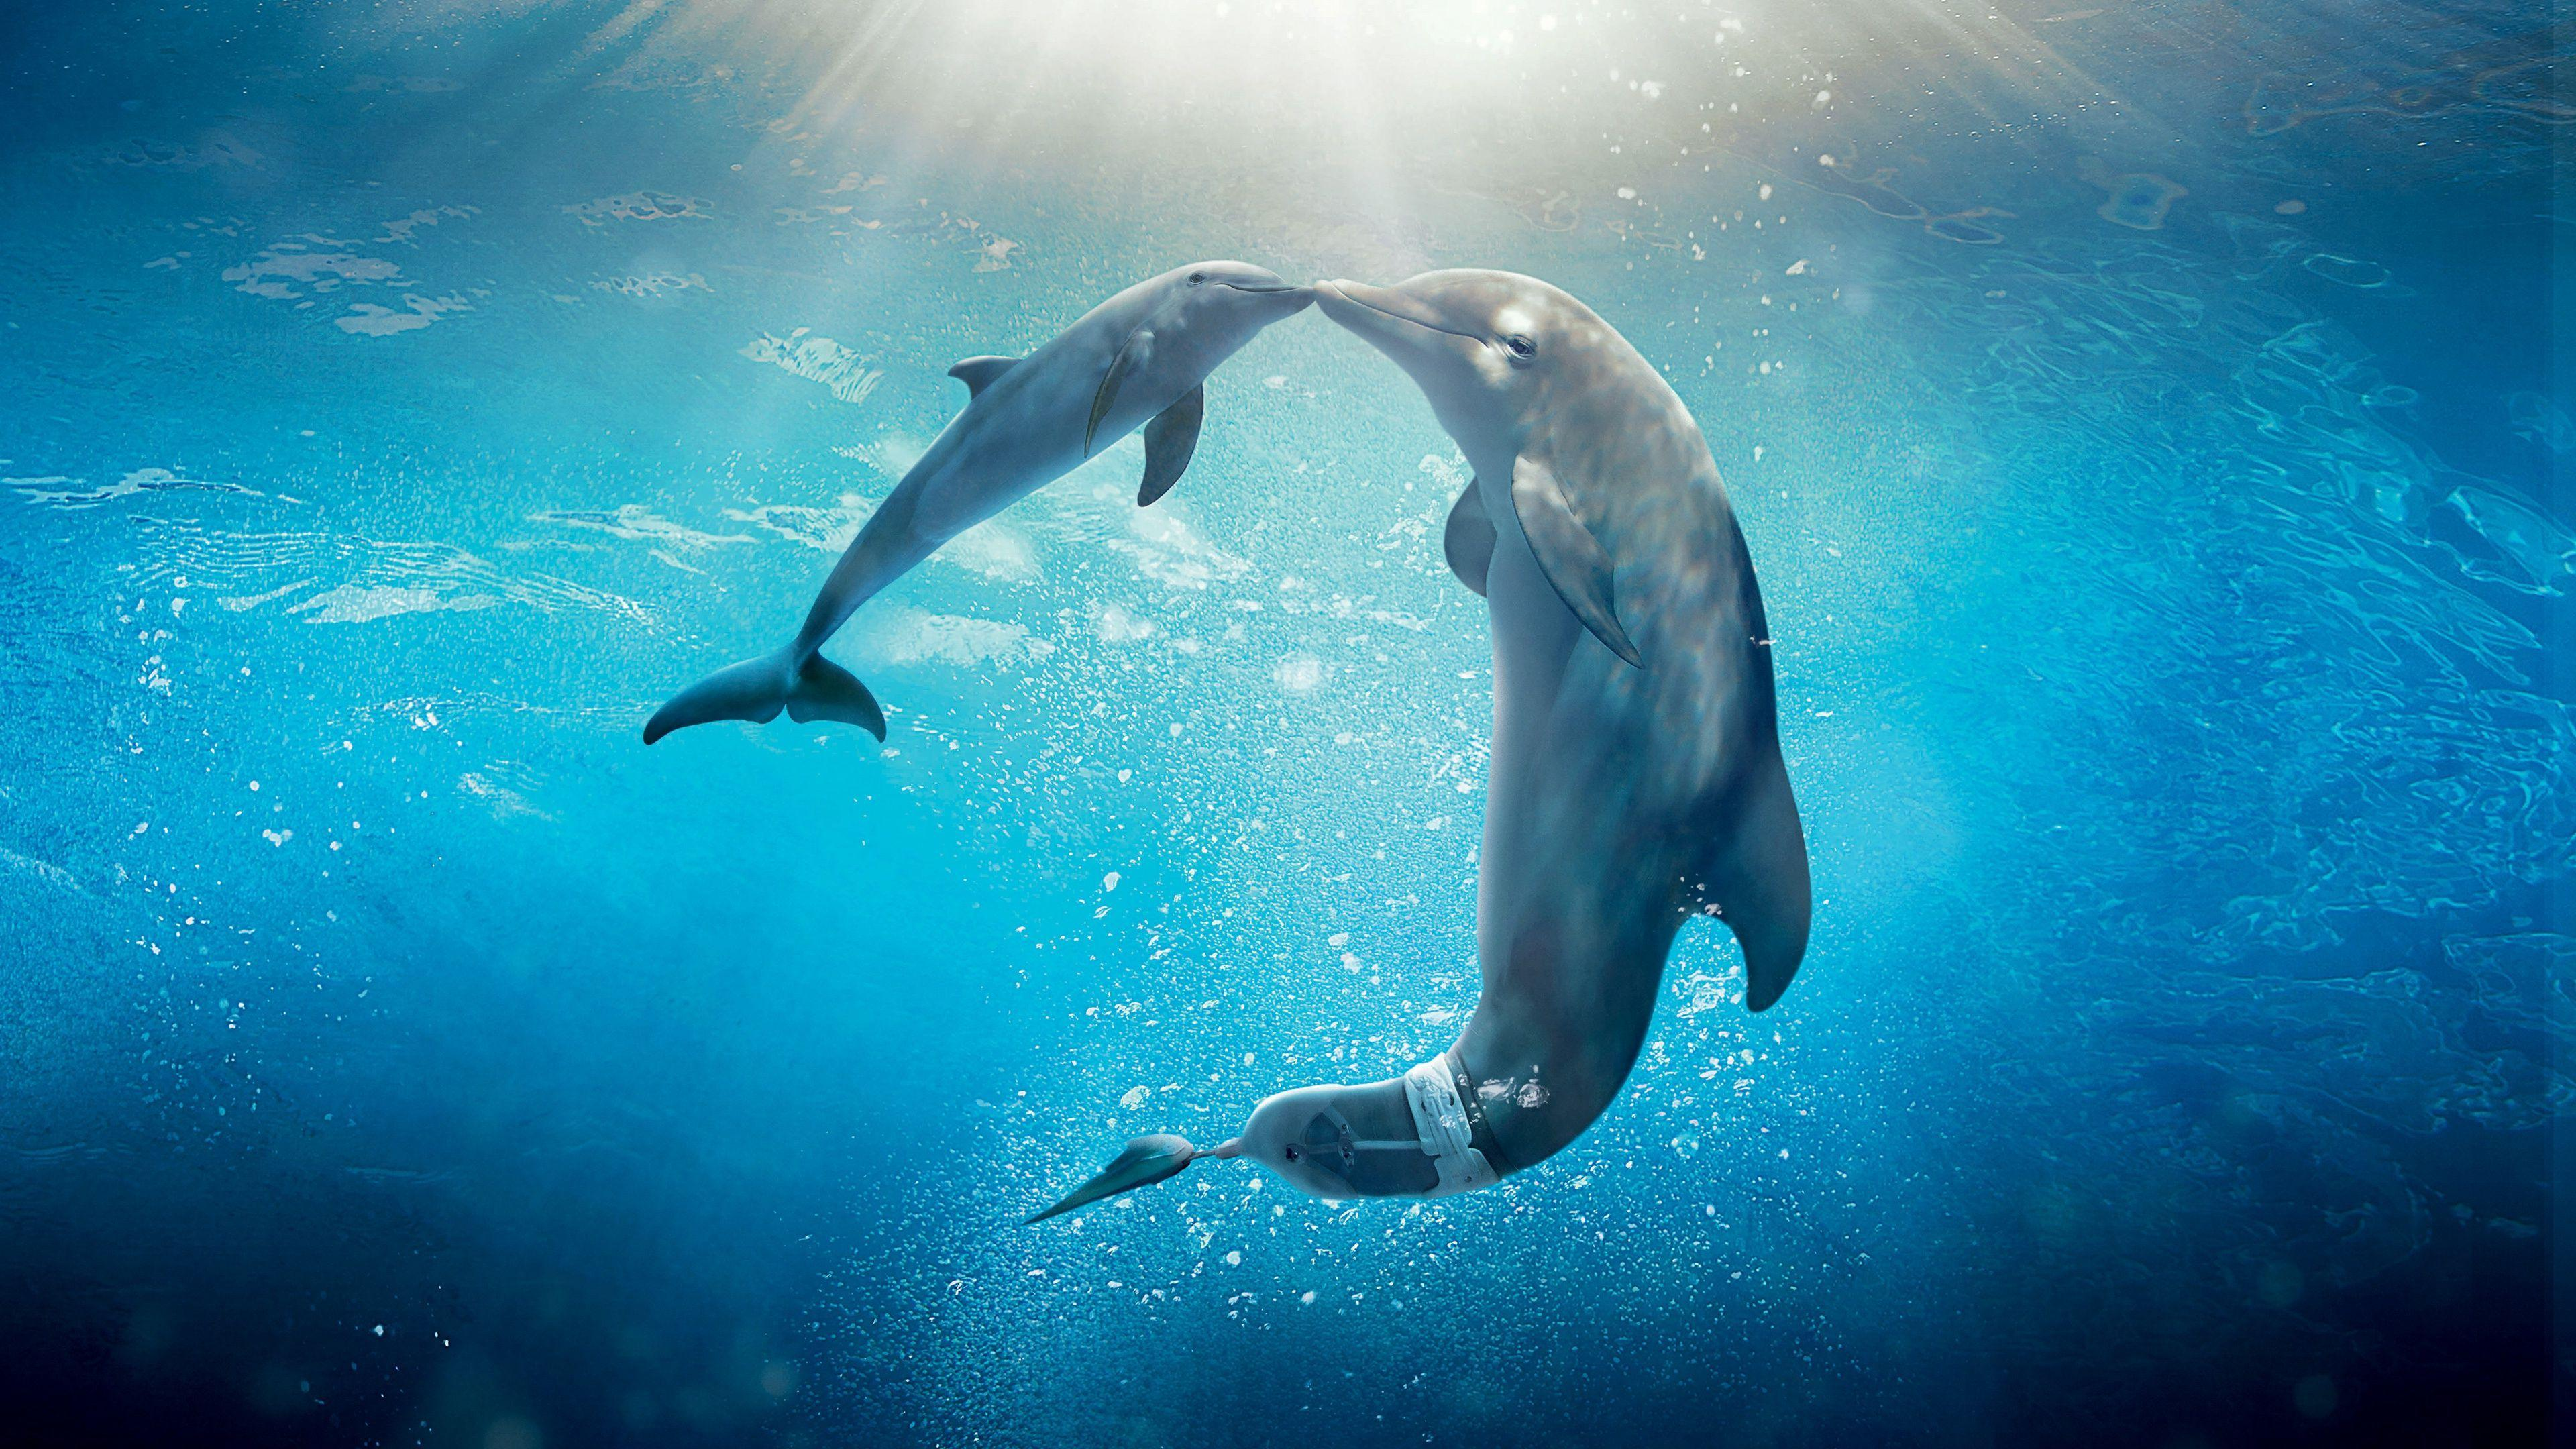 Animated Fish Wallpaper Mobile Hd Dolphin Tale 2 Wallpaper Download Free 147120